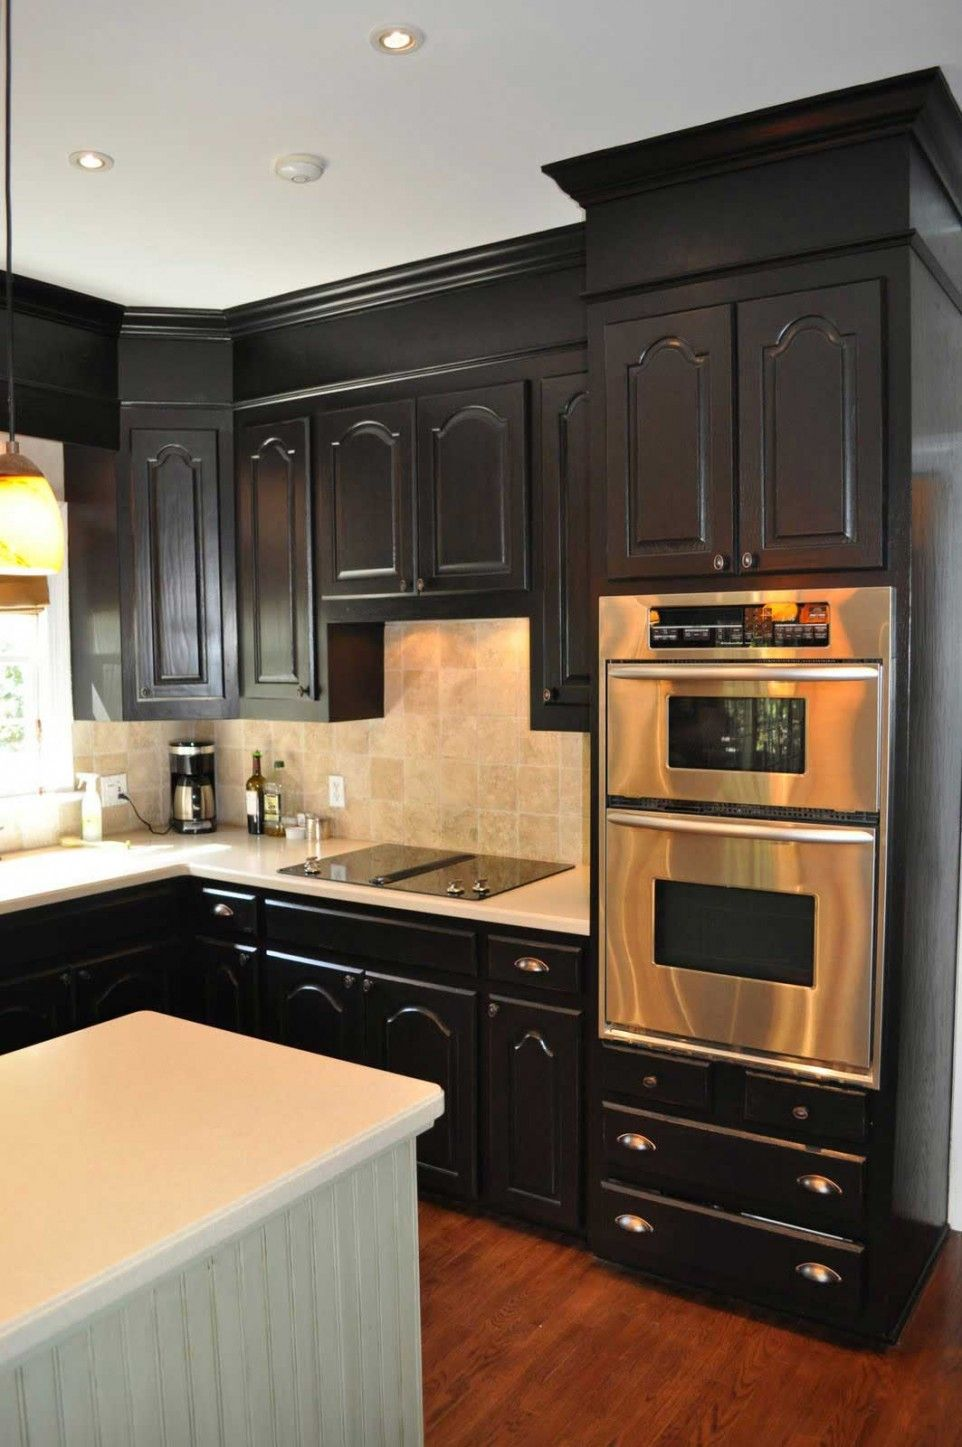 Crown Molding On Top Gives The Illusion Of Taller Cabinets Kitchen Design Small Home Kitchens Kitchen Soffit